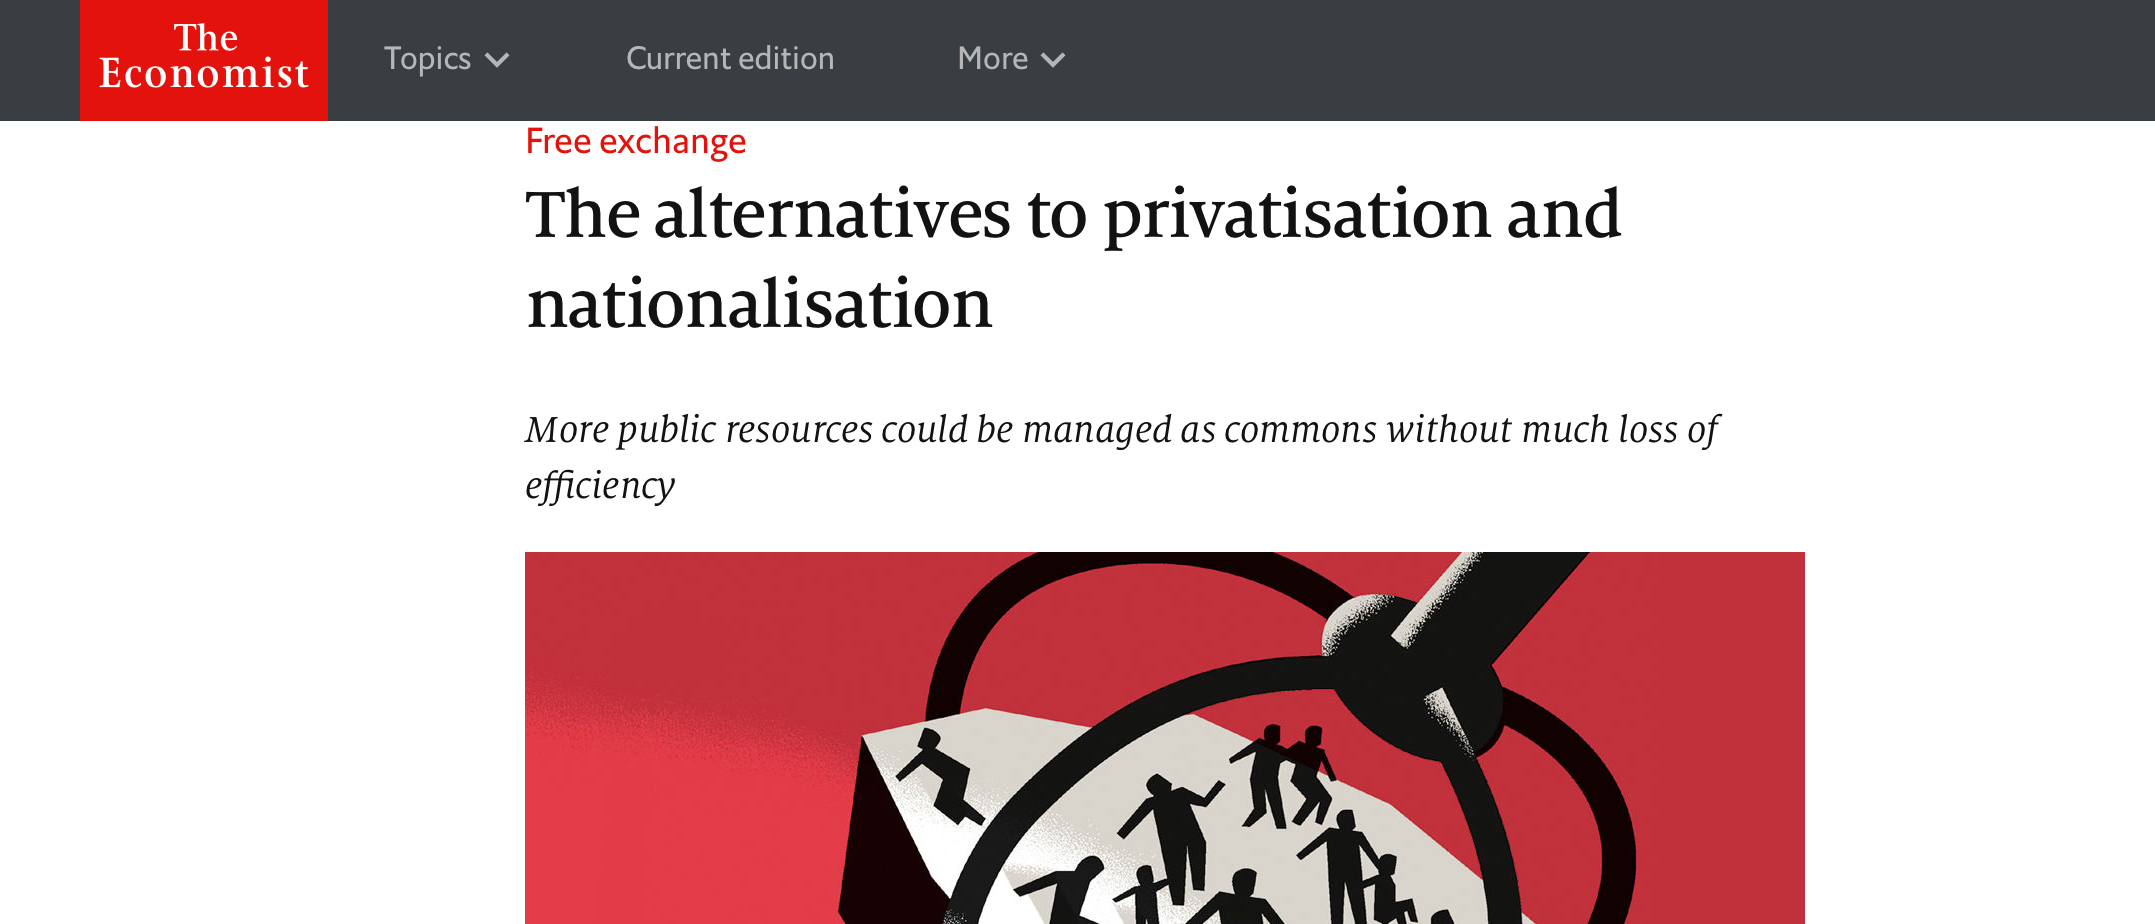 The Economist - The alternatives to privatisation and nationalisation